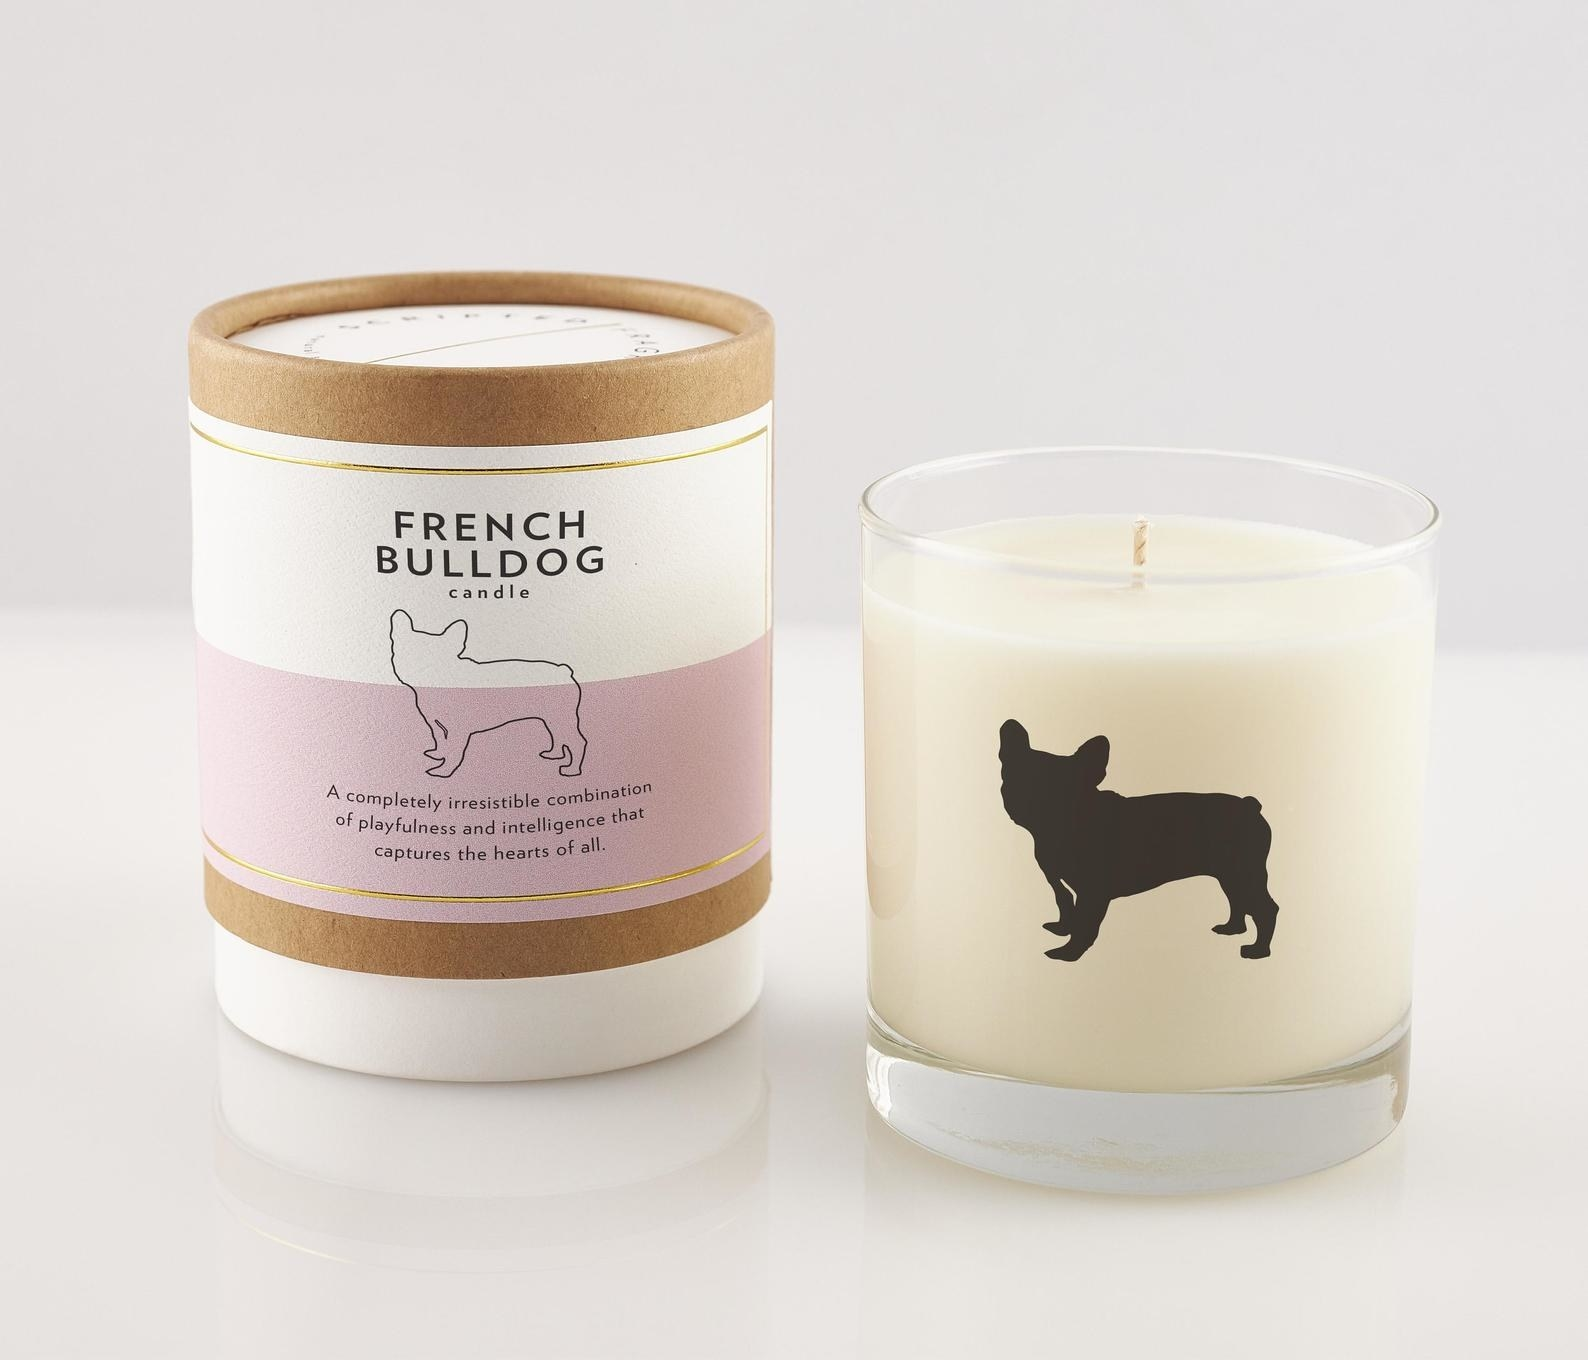 the white candle with a pink and cardboard cover that has a French Bulldog decal